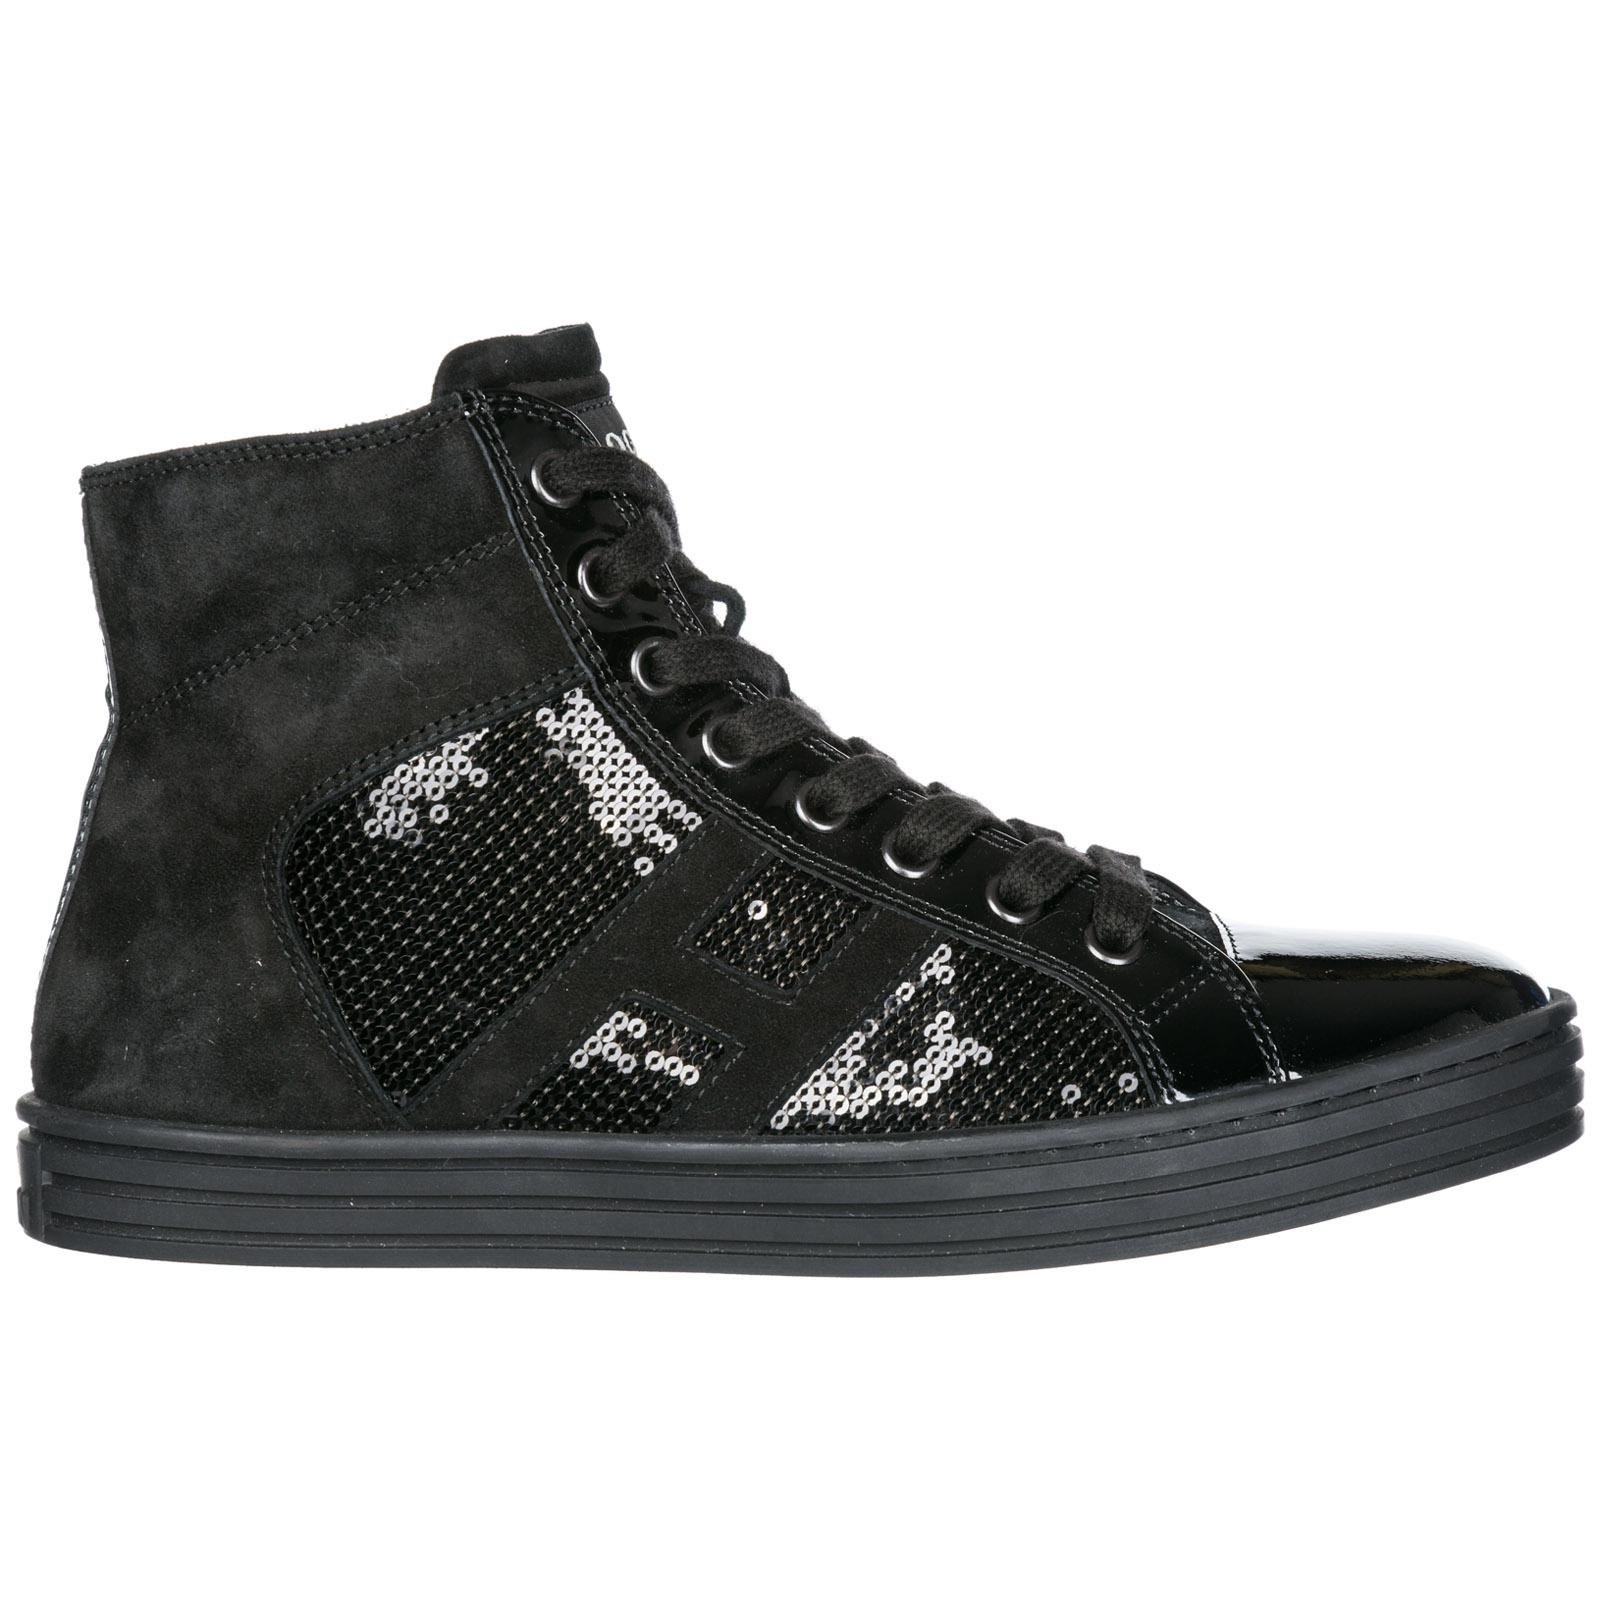 63ad4c05017 Lyst - Hogan Rebel Shoes High Top Suede Trainers Sneakers R141 in Black